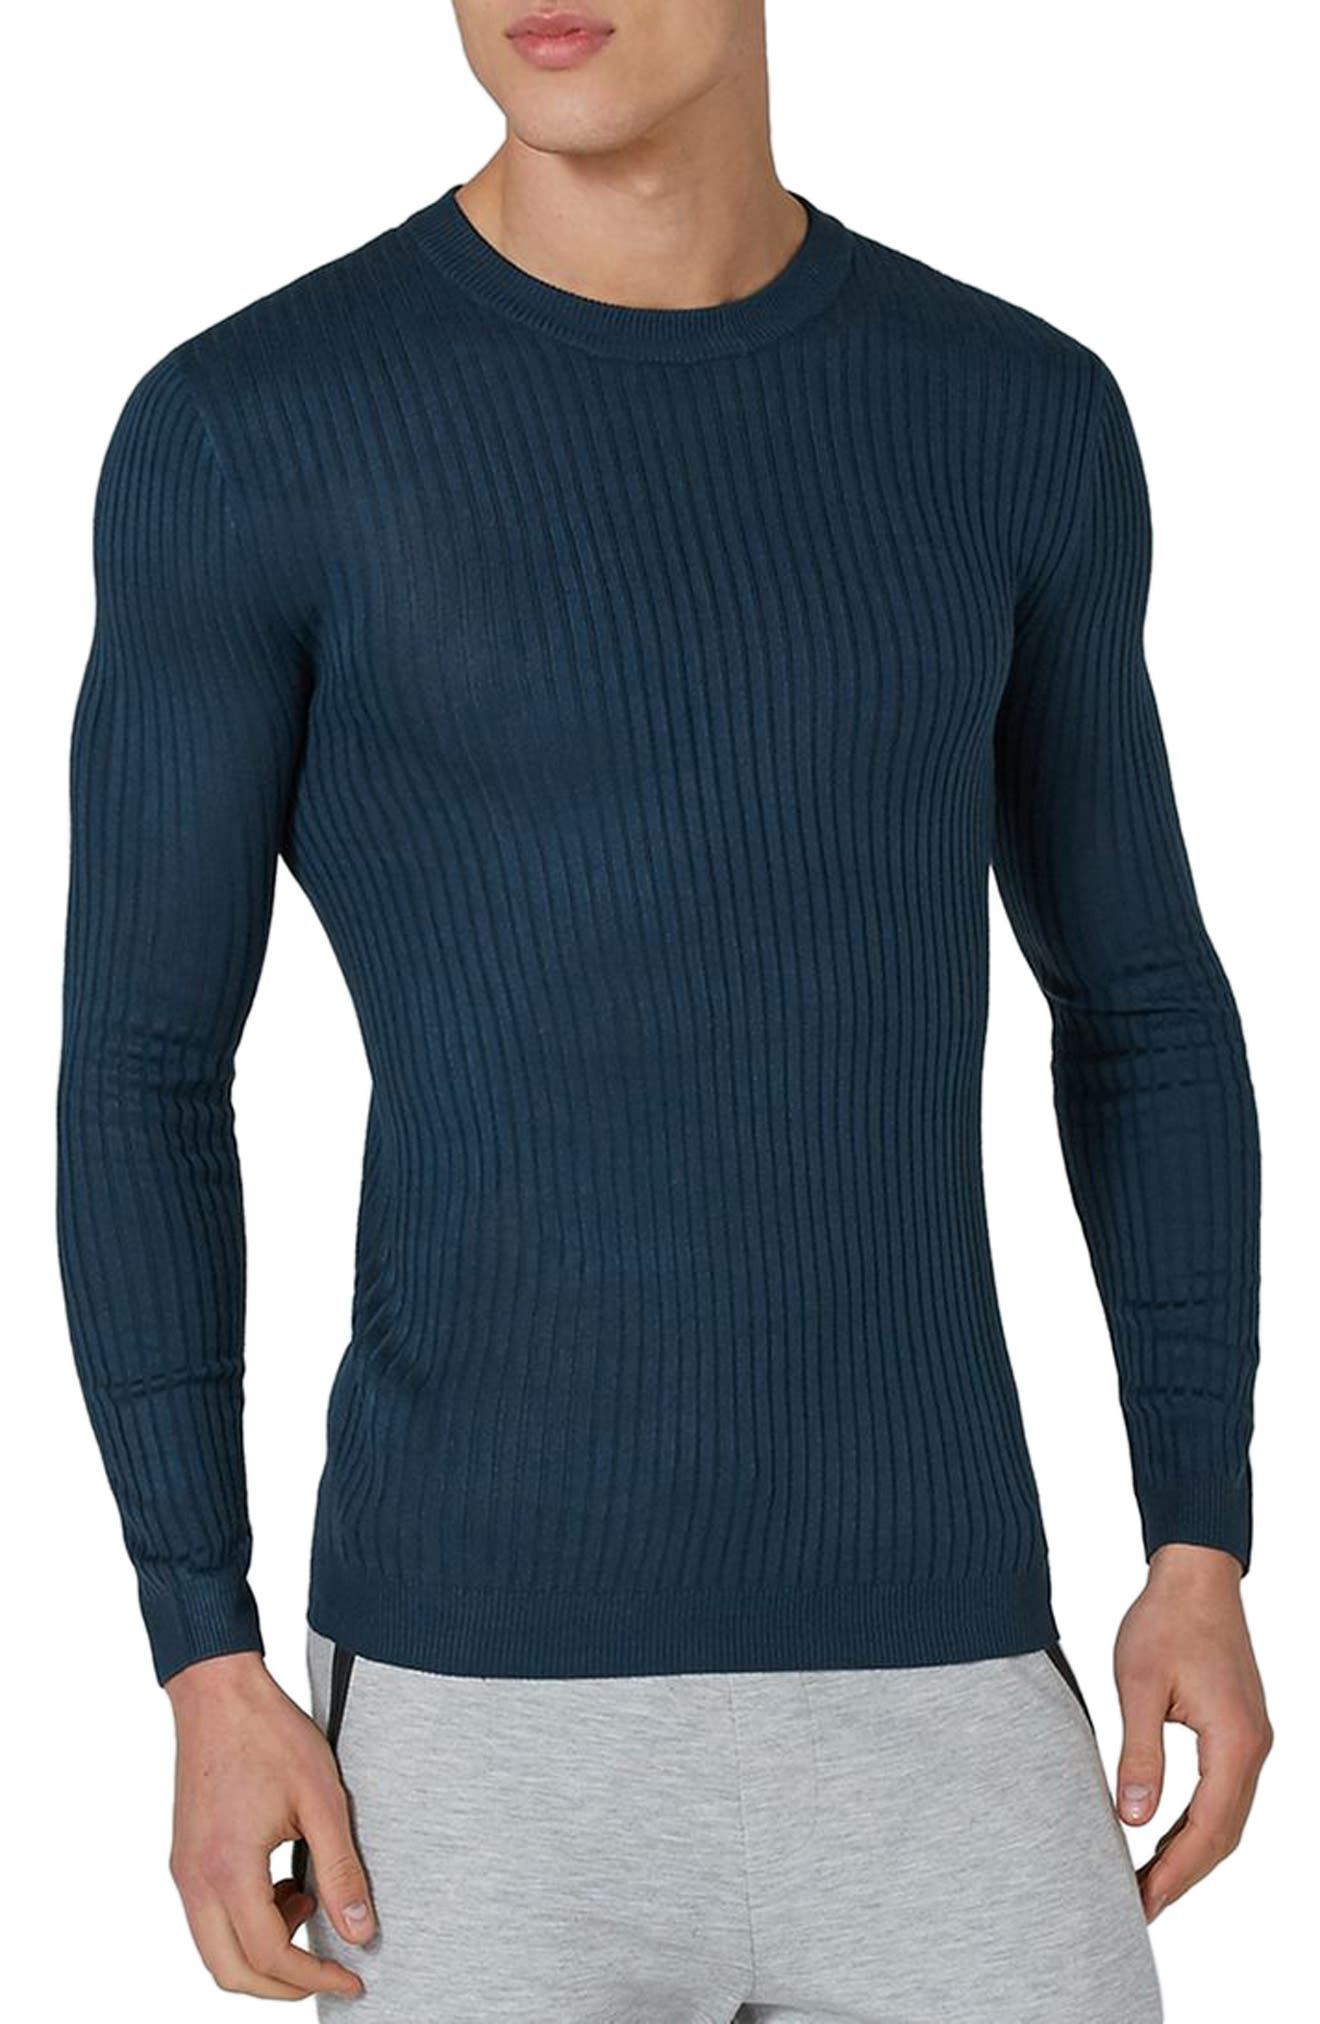 Ribbed Muscle Fit Sweater,                         Main,                         color, 420